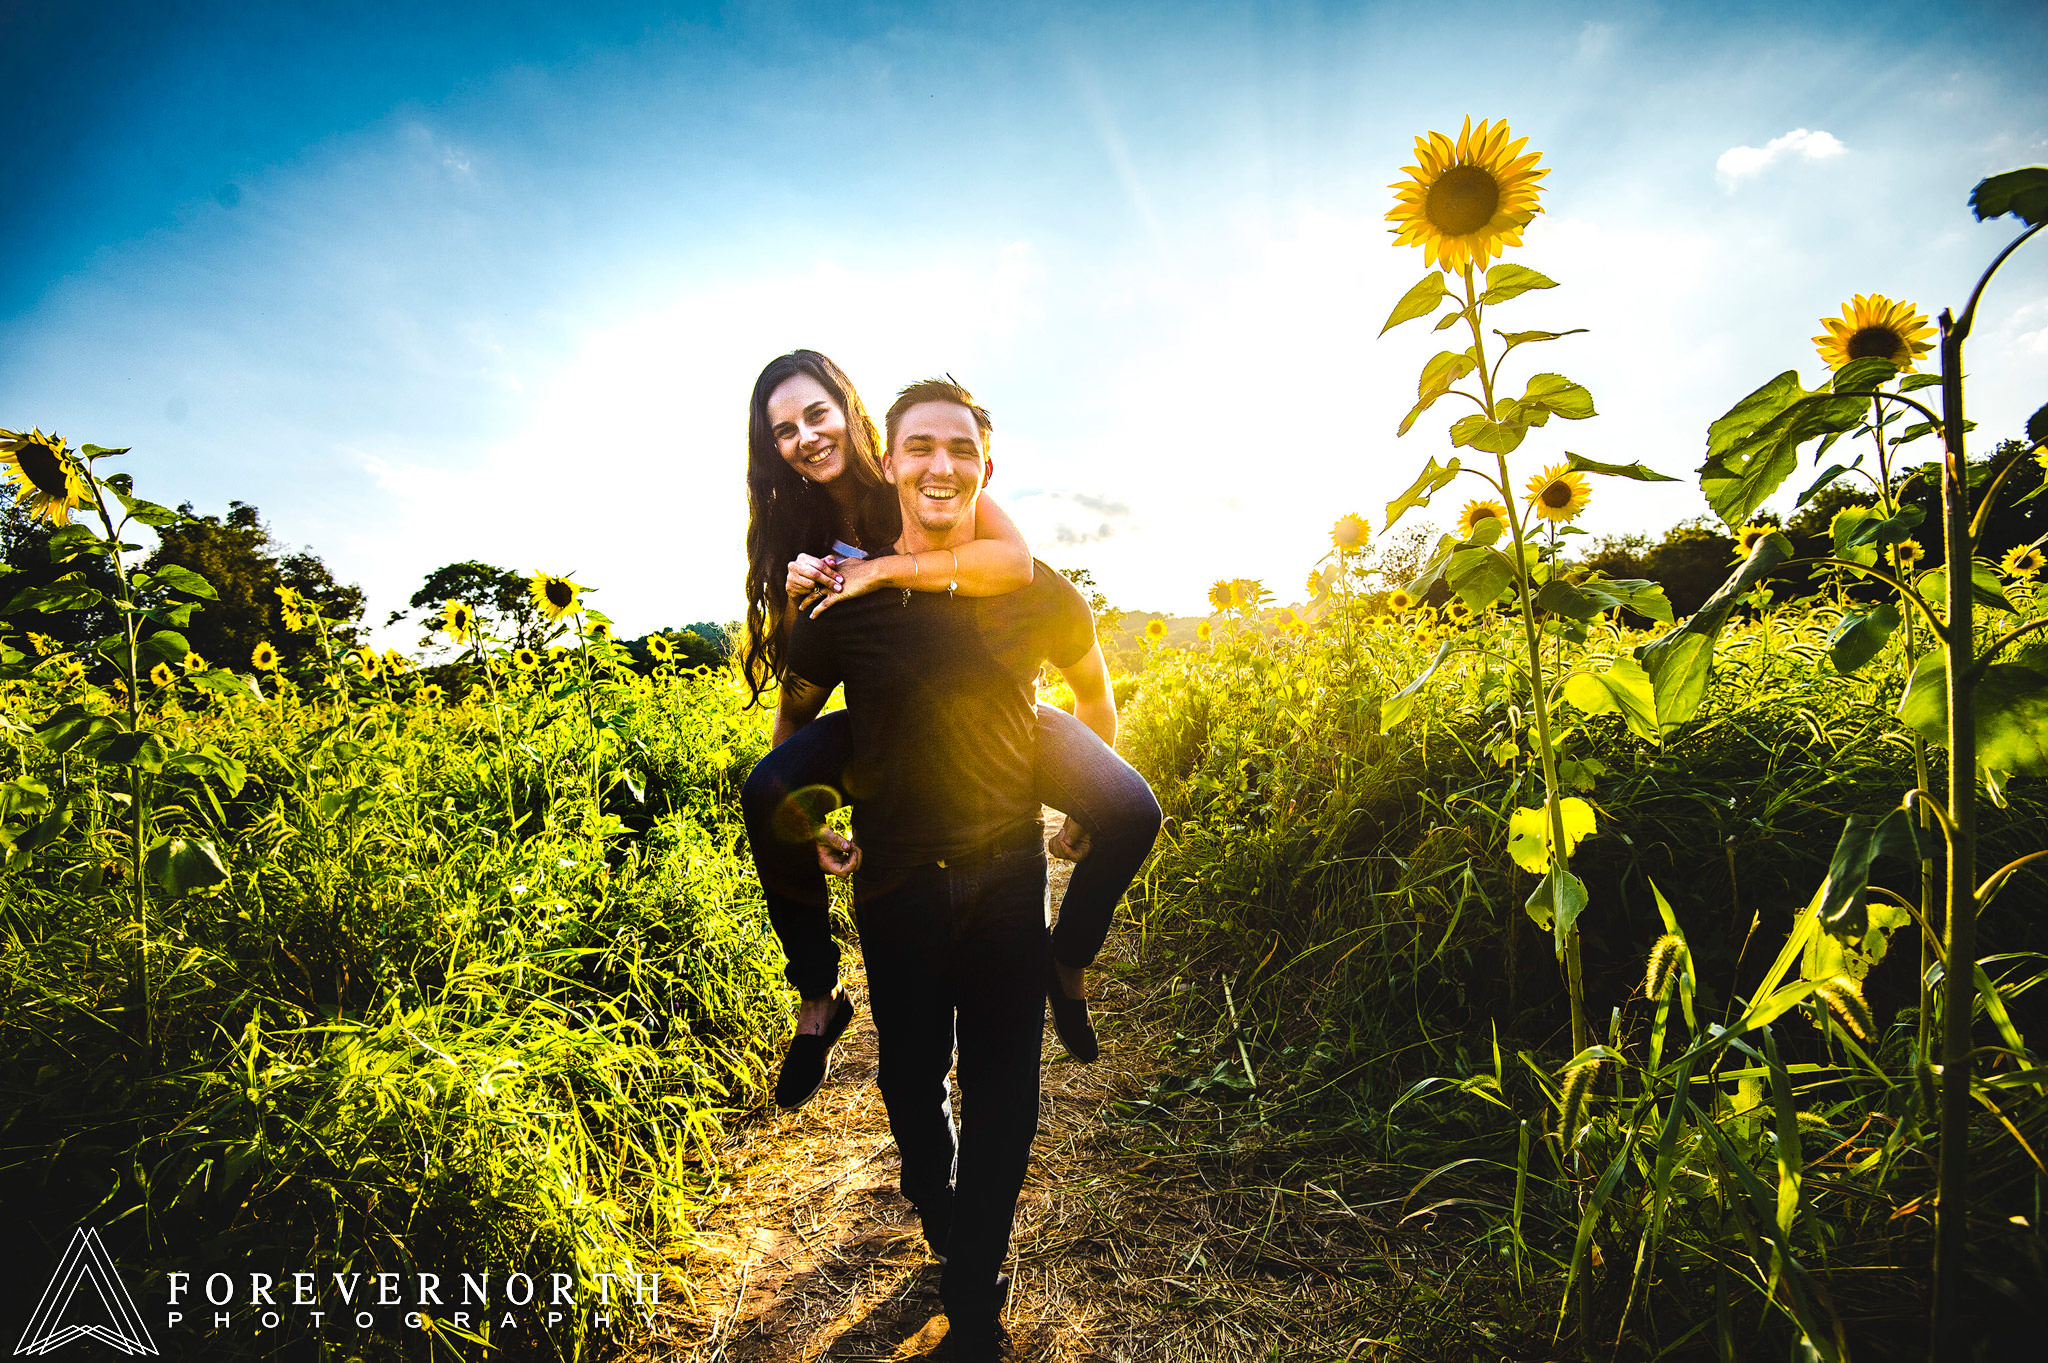 Ennis-Sussex-Sunflower-Maze-Engagement-Photos-08.JPG